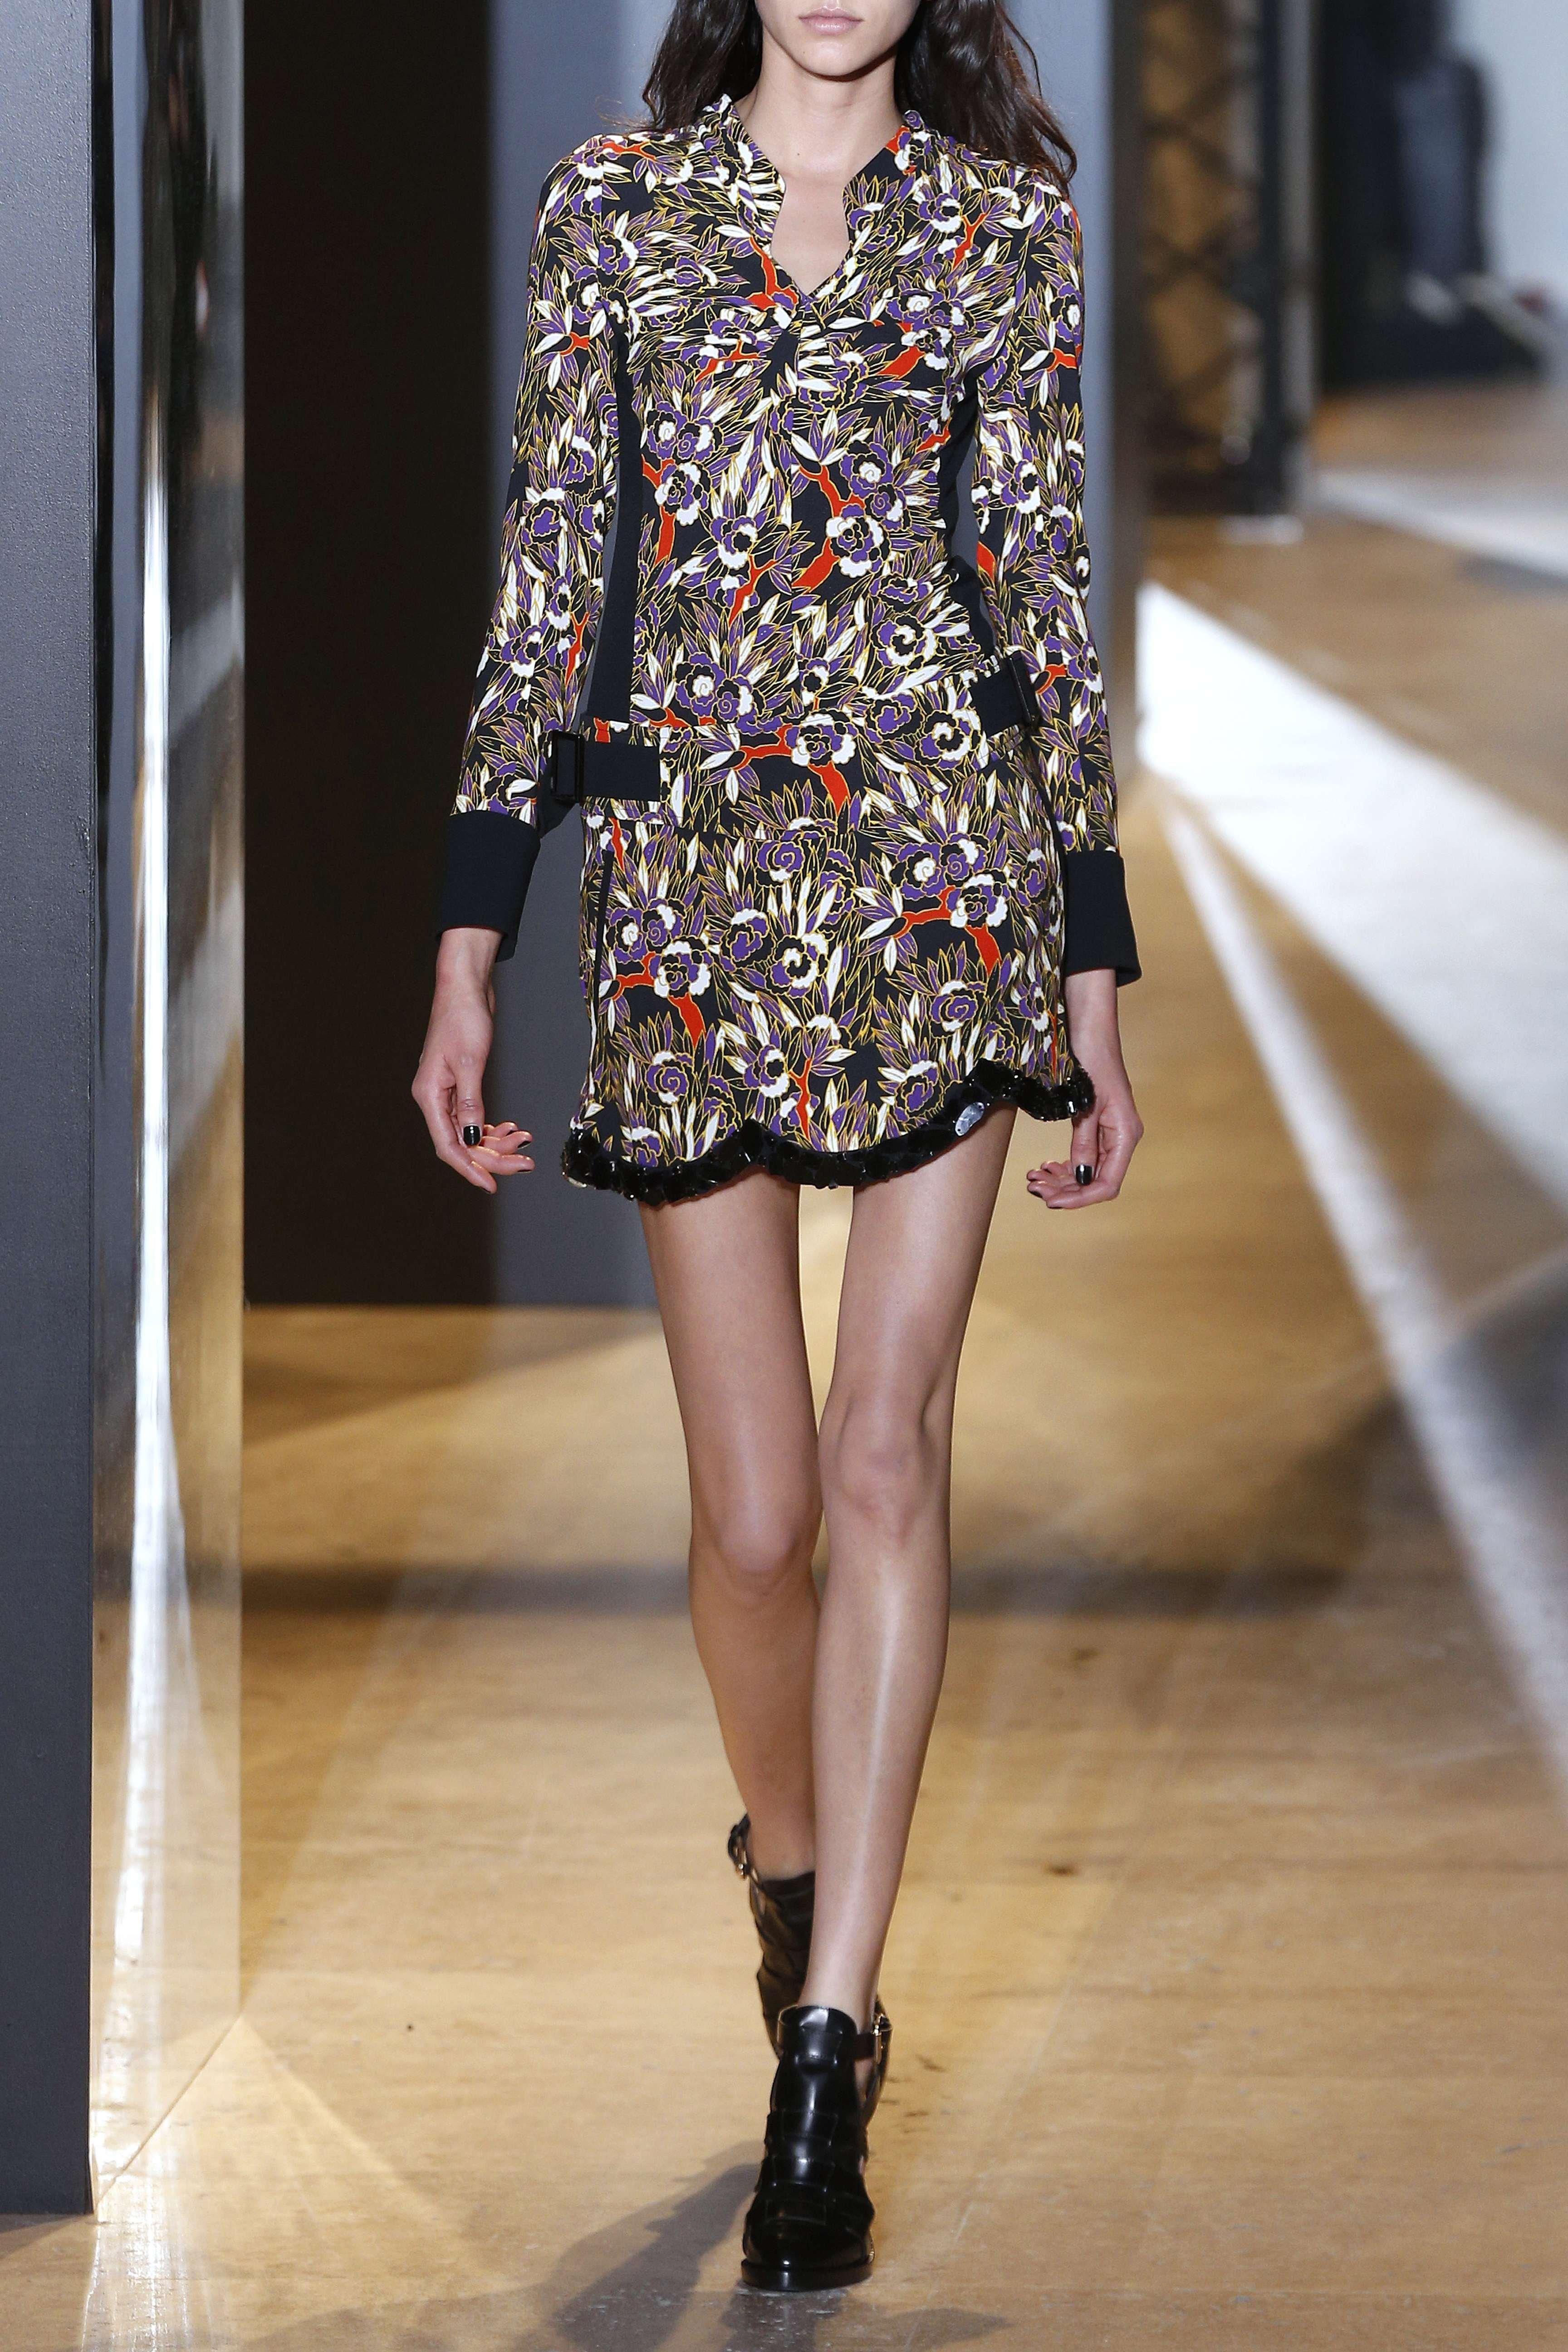 Anorexia Crackdown: France Bans Fashion Models Who Are Too Thin